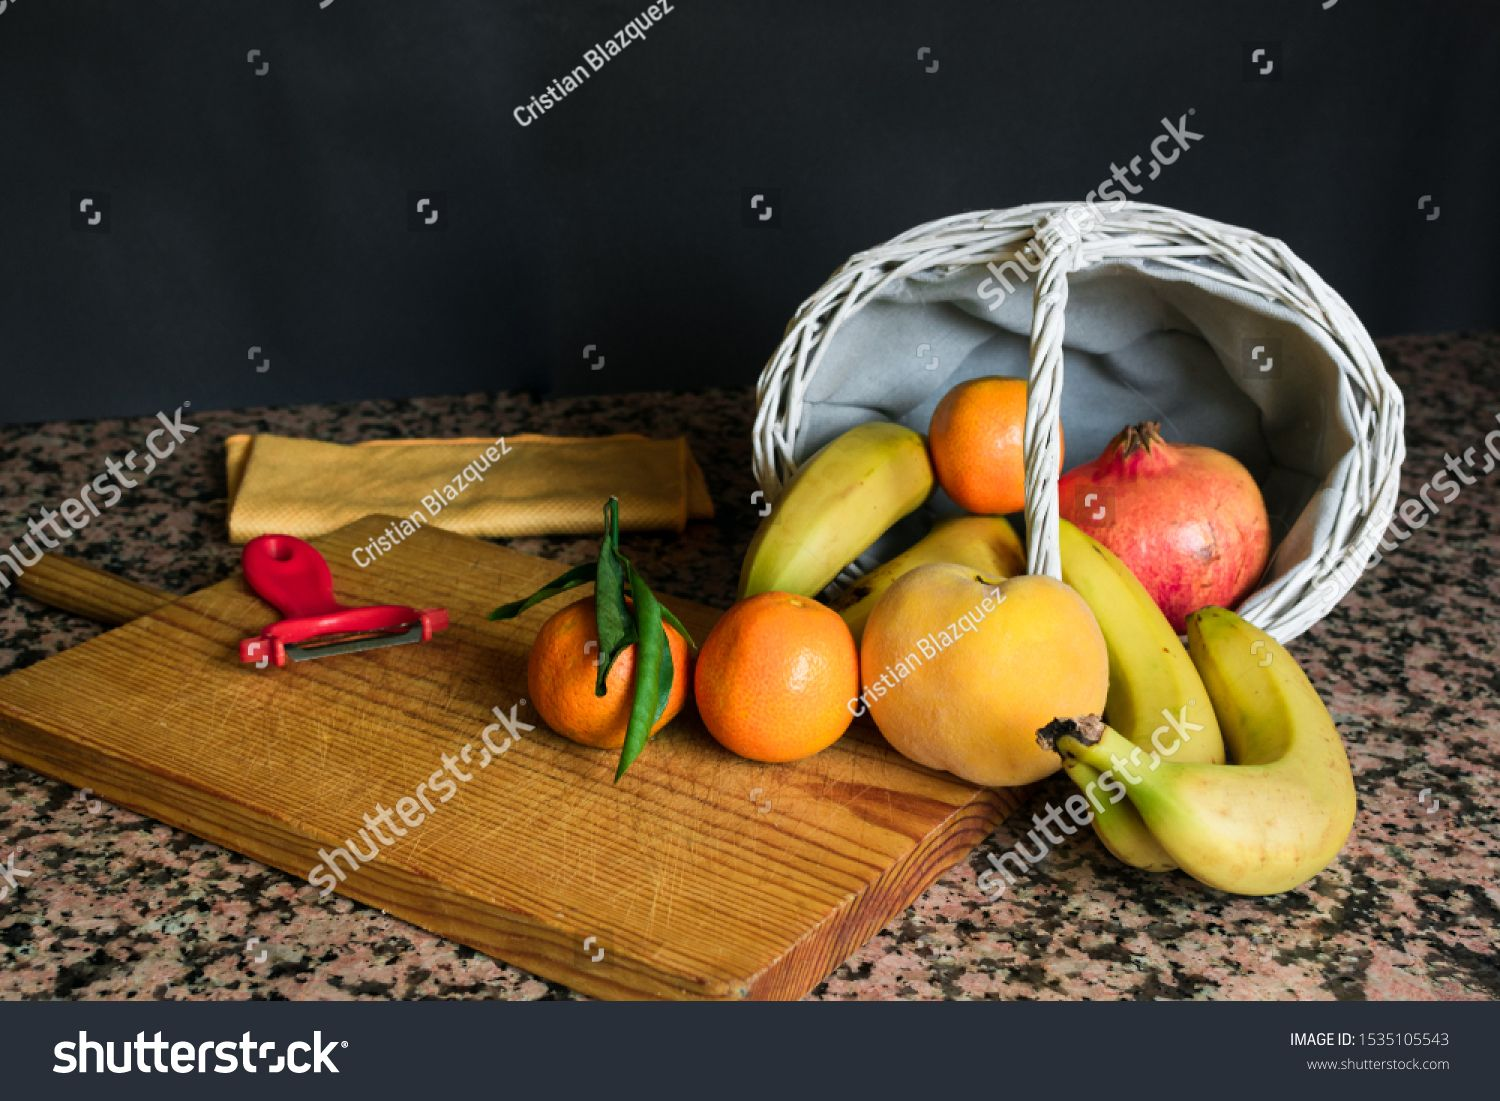 Stock photo of a fruit still live with a white basket and